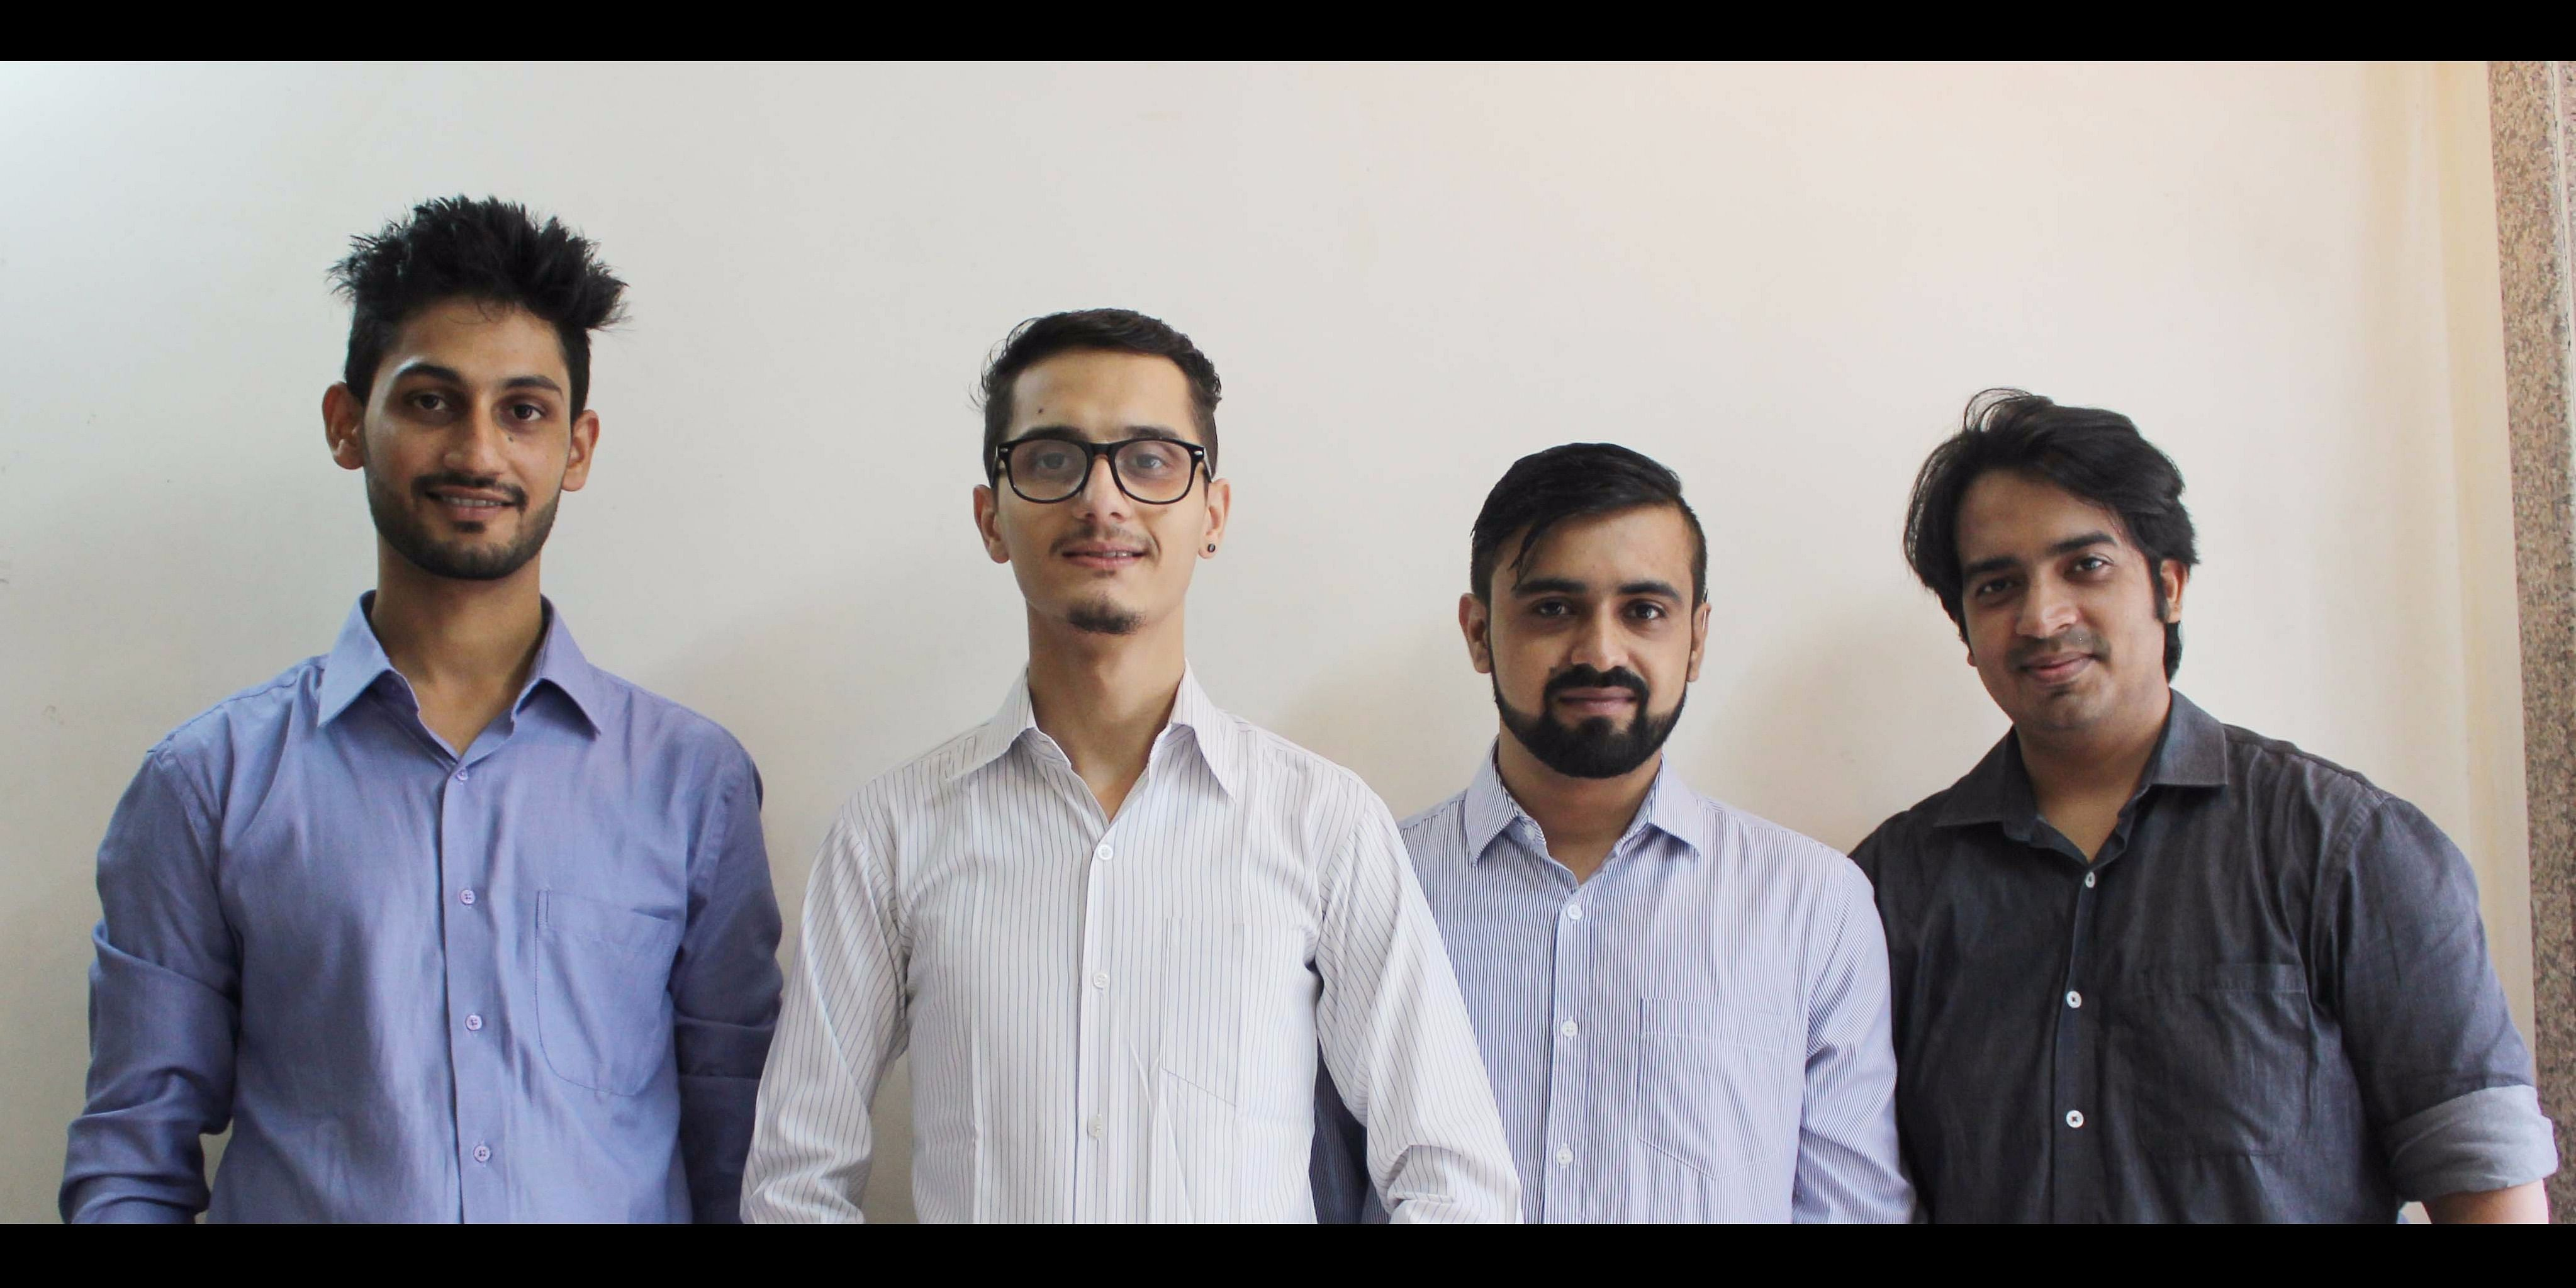 Search Workplace Core Members (from left to right): Rajat Bagree, Sandesh Subedi, Piyush Verma, Amey Patil